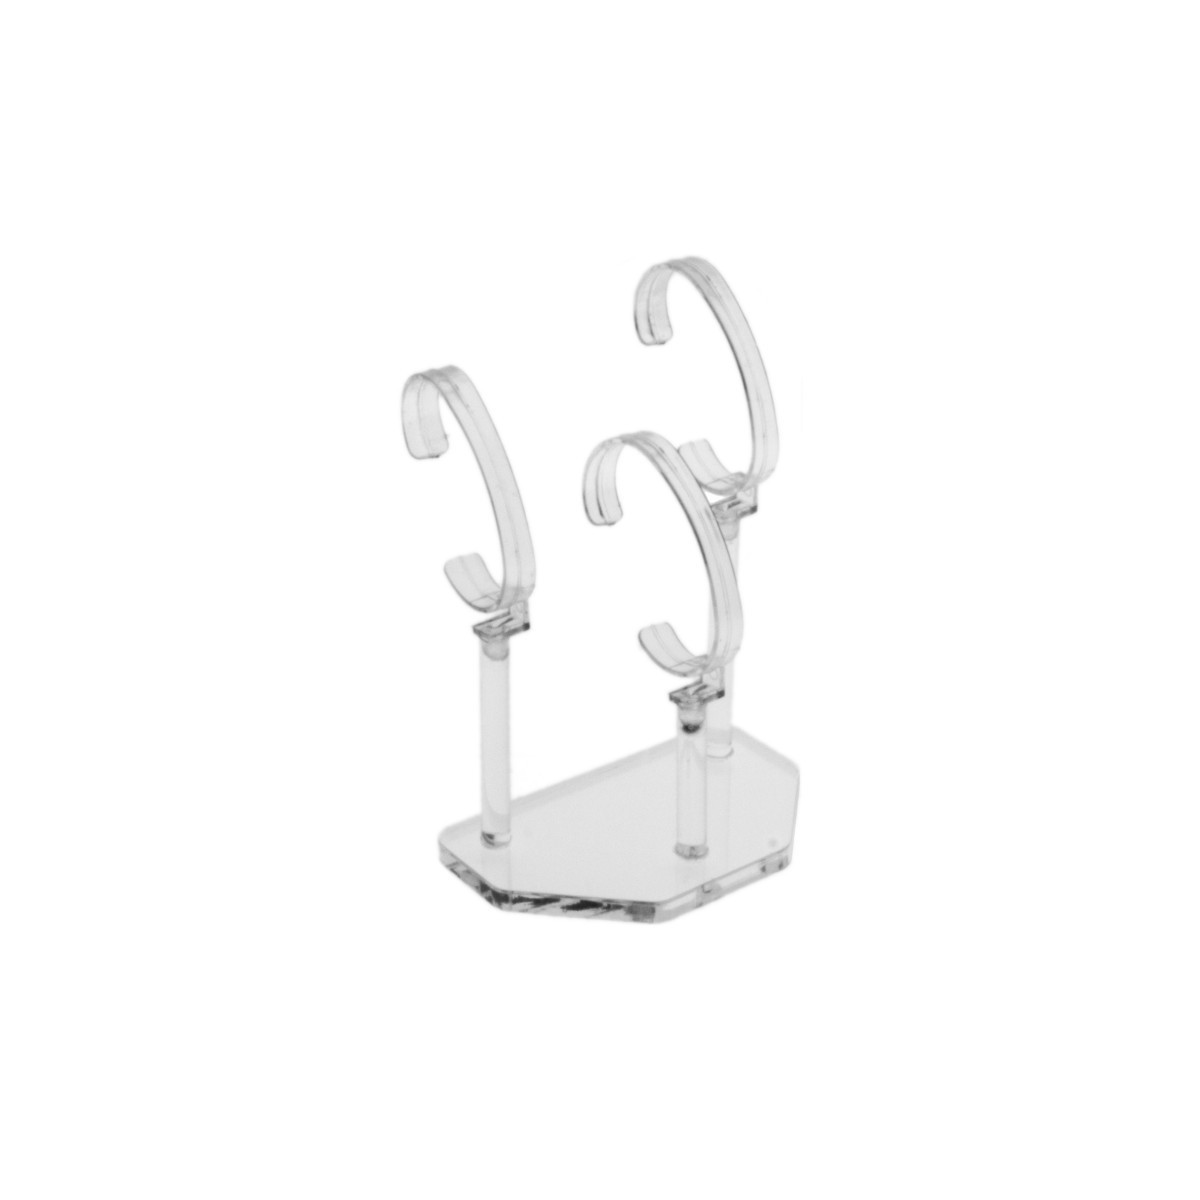 Clear Acrylic wrist watch display holder stand, for 3 bracelet watches